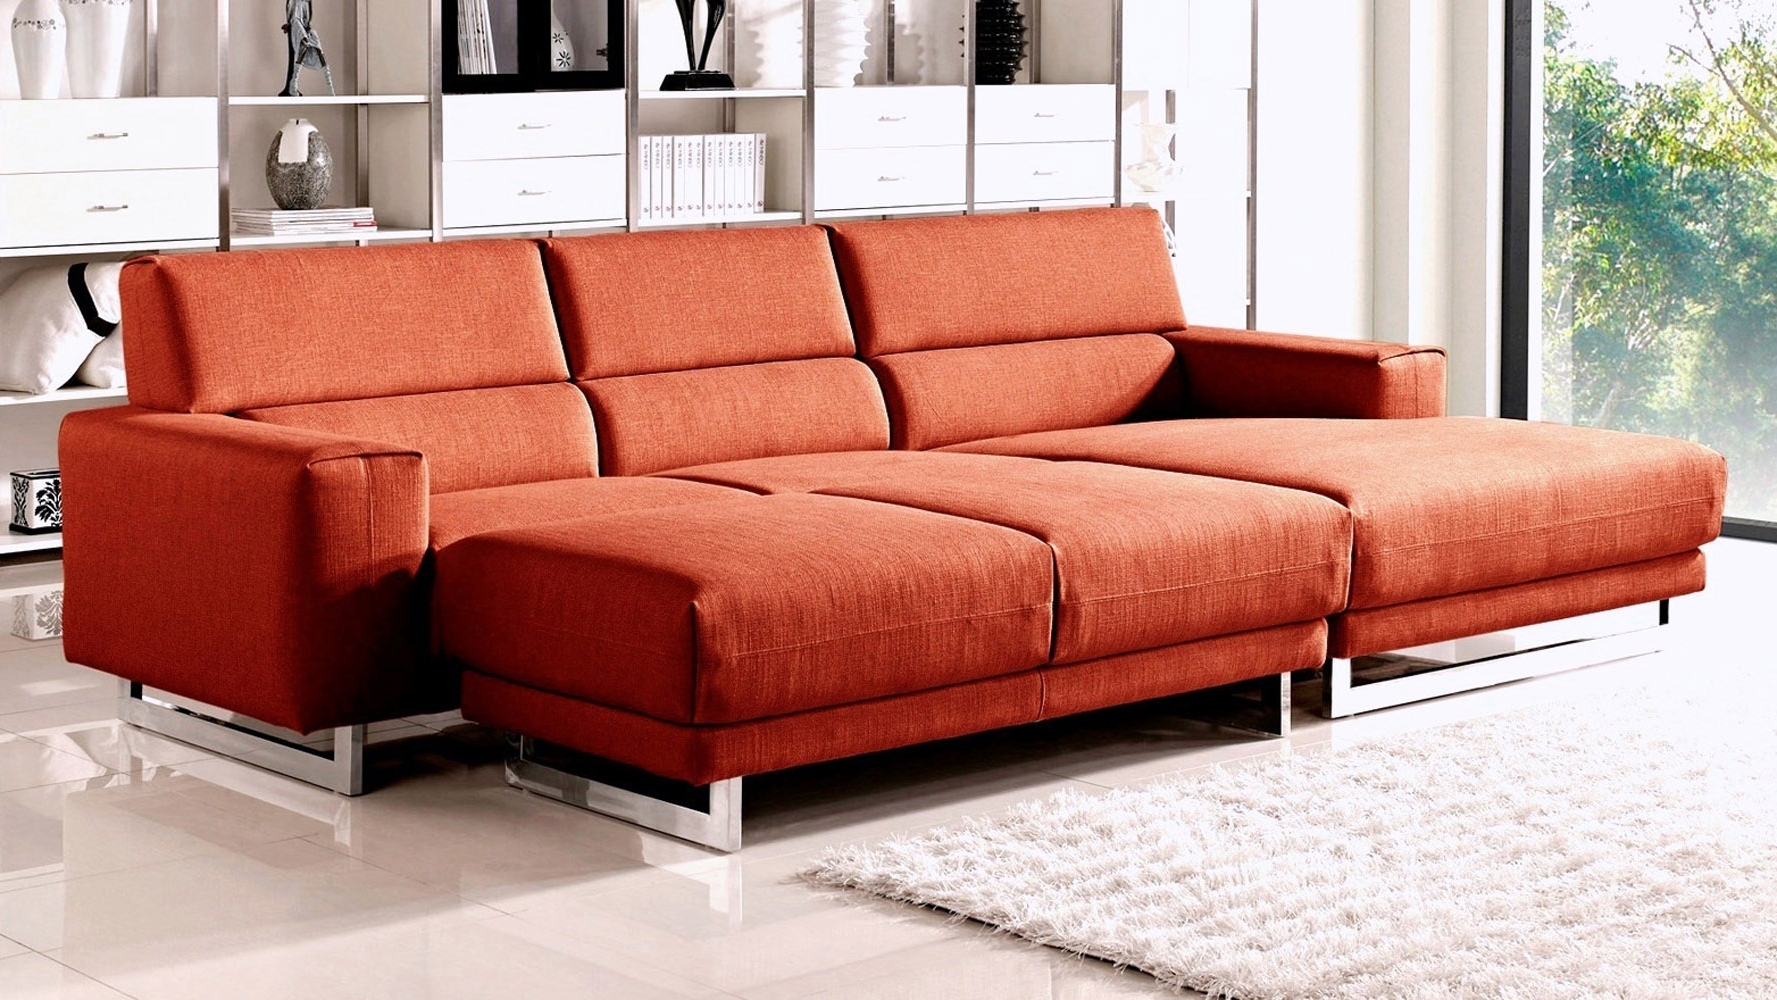 Lazy Boy Sectional Reviews Sectional Sofas With Recliners Sam's With Most Recent Sams Club Sectional Sofas (View 9 of 15)